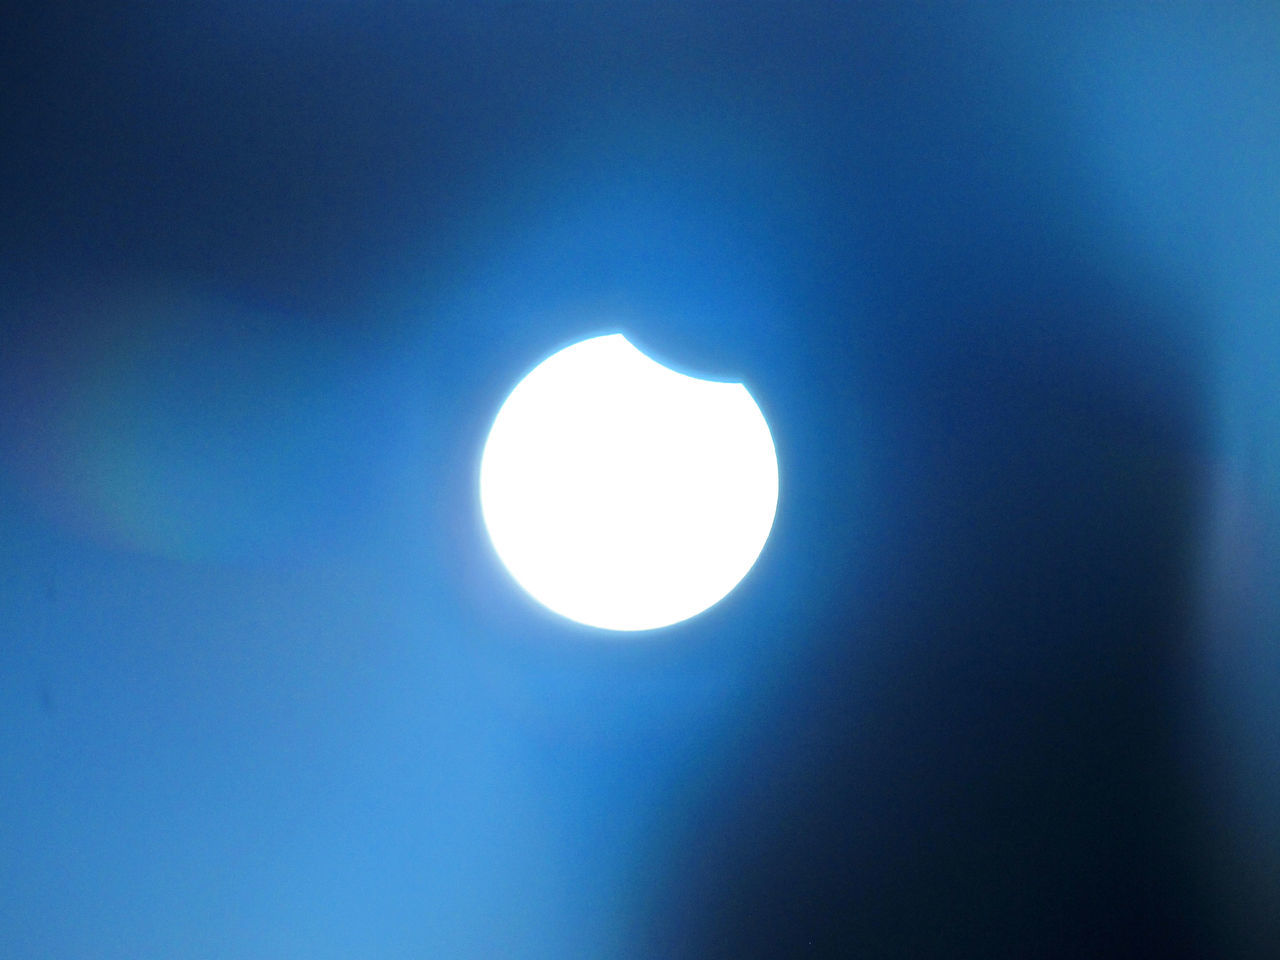 Parcial Eclipse 26/02/2017 Astronomia Astronomie Astronomy Astronomy Photography Beauty In Nature Blue Sky Blue Sky And Clouds Day Eclipse Eclipse 2017 Eclipse Of The Sun Eclipse Phases Eclipse_sun Eclipsevariation Nature Observation Sky Shadow From The Moon Shadow In The Sun Shadows & Lights Sky Sky And Clouds Sky Blue Solar Solar Eclipse